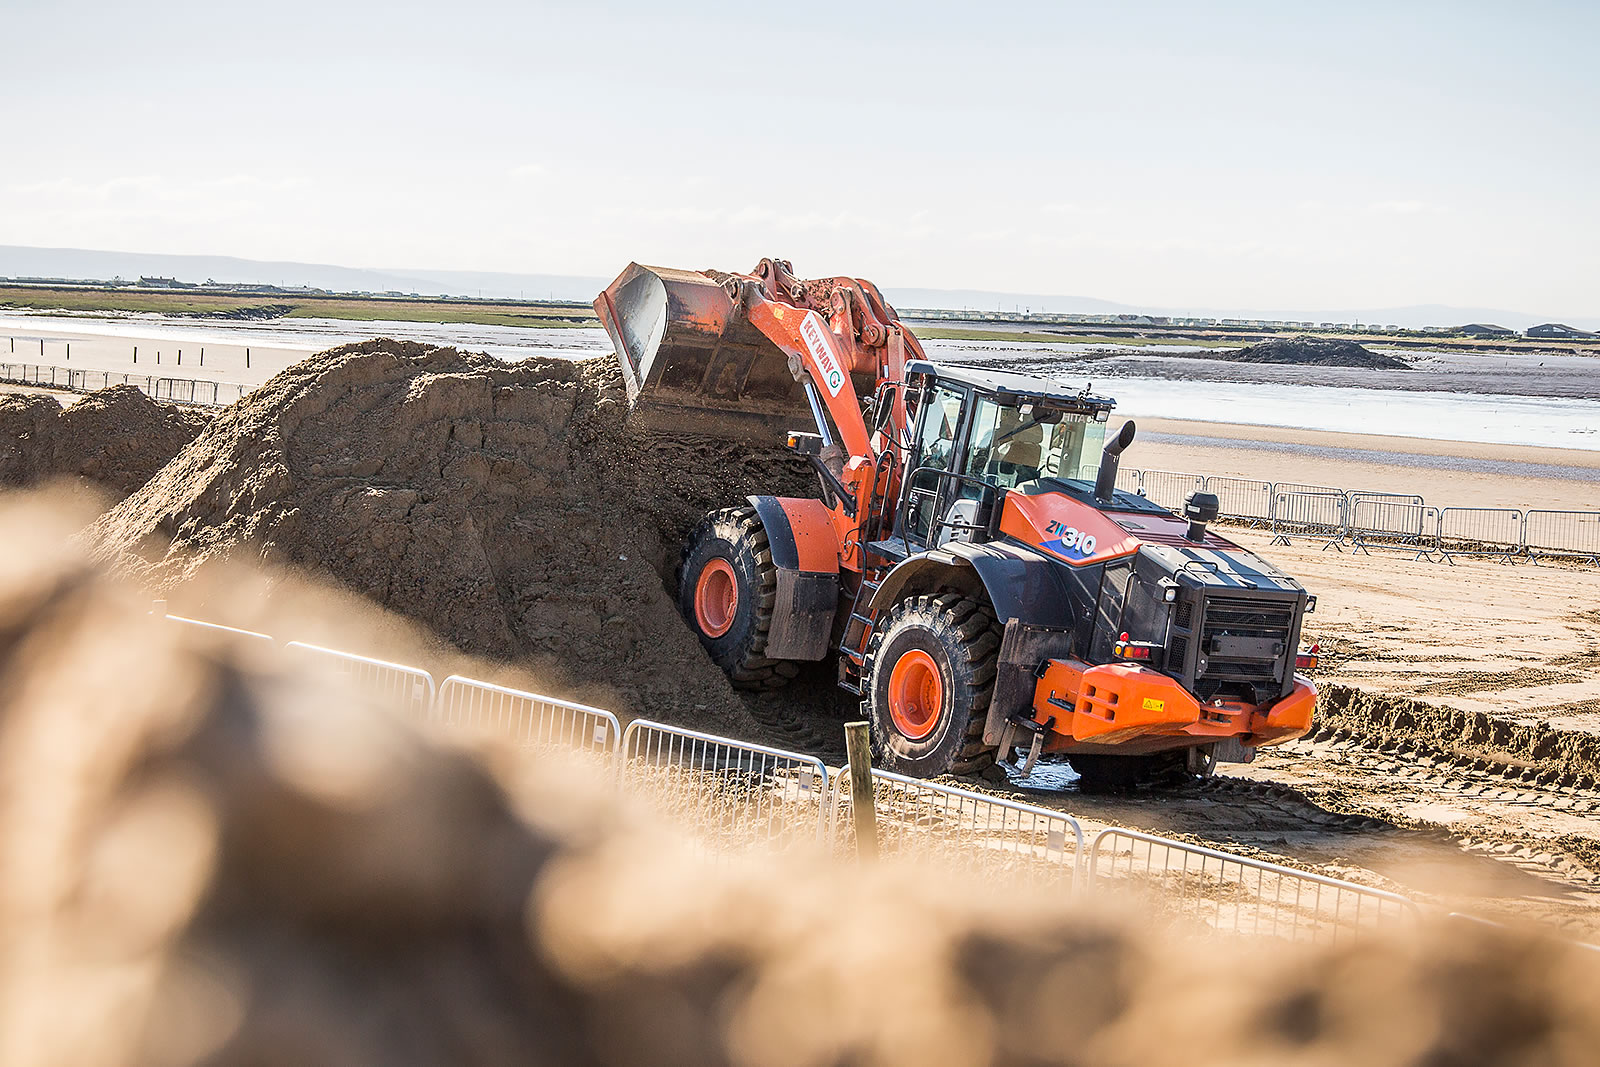 Hitachi ZW310-6 wheel loader helps to build obstacles for the Weston Beach Race